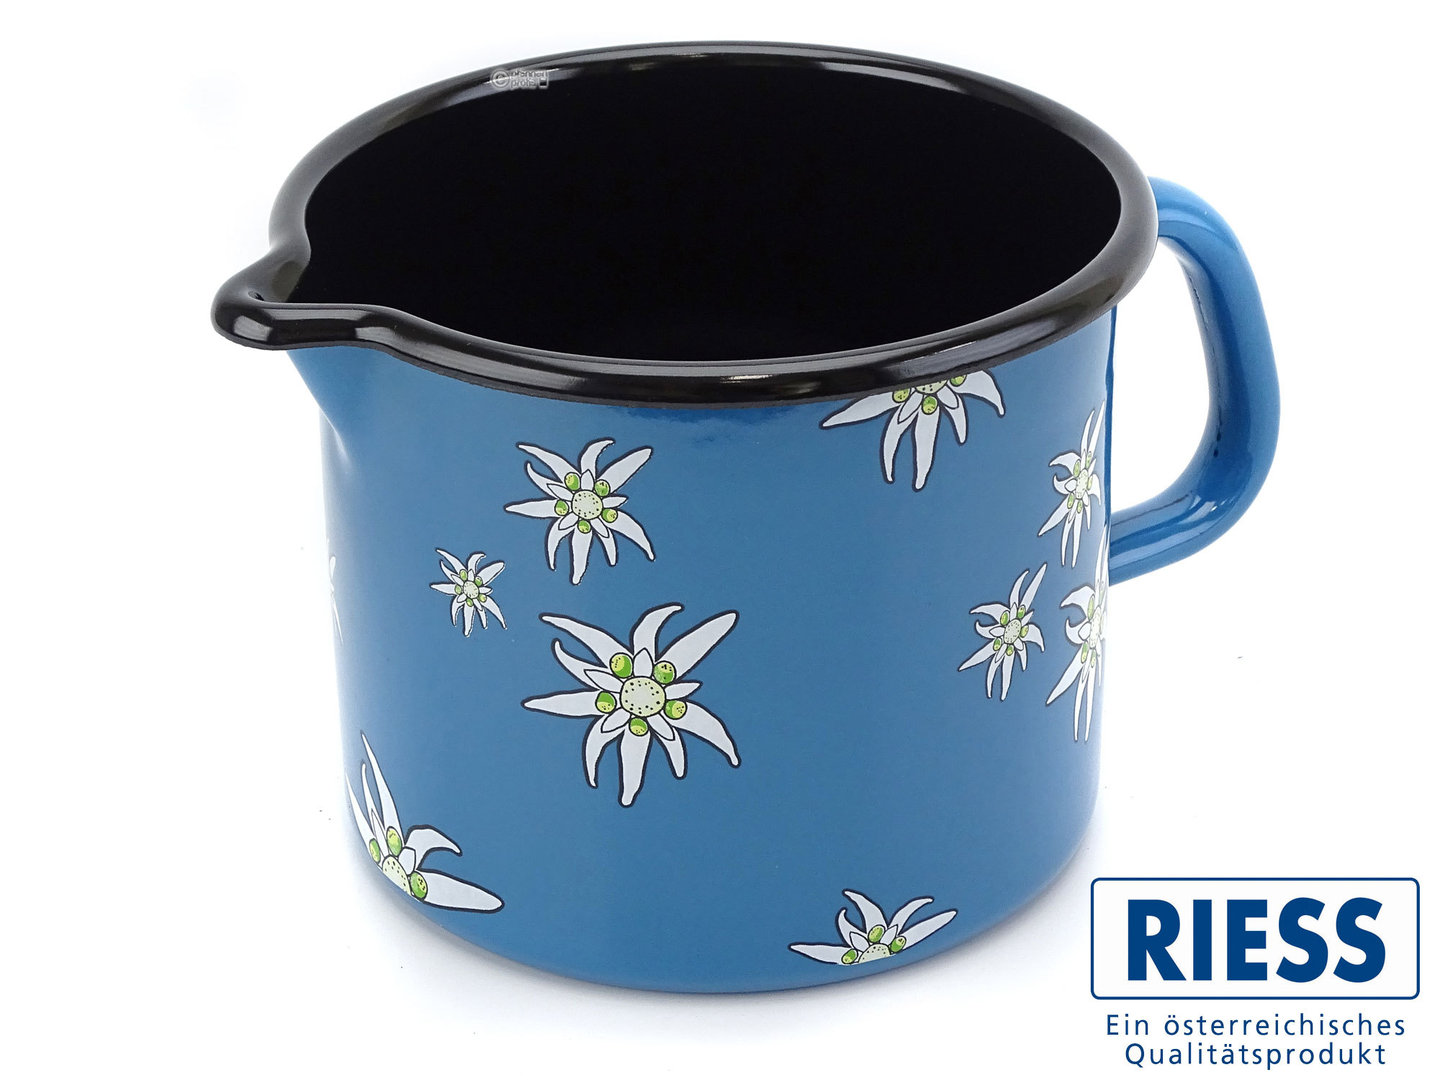 RIESS milk pot enamel edelweiss blue 14 cm 1,7 liter